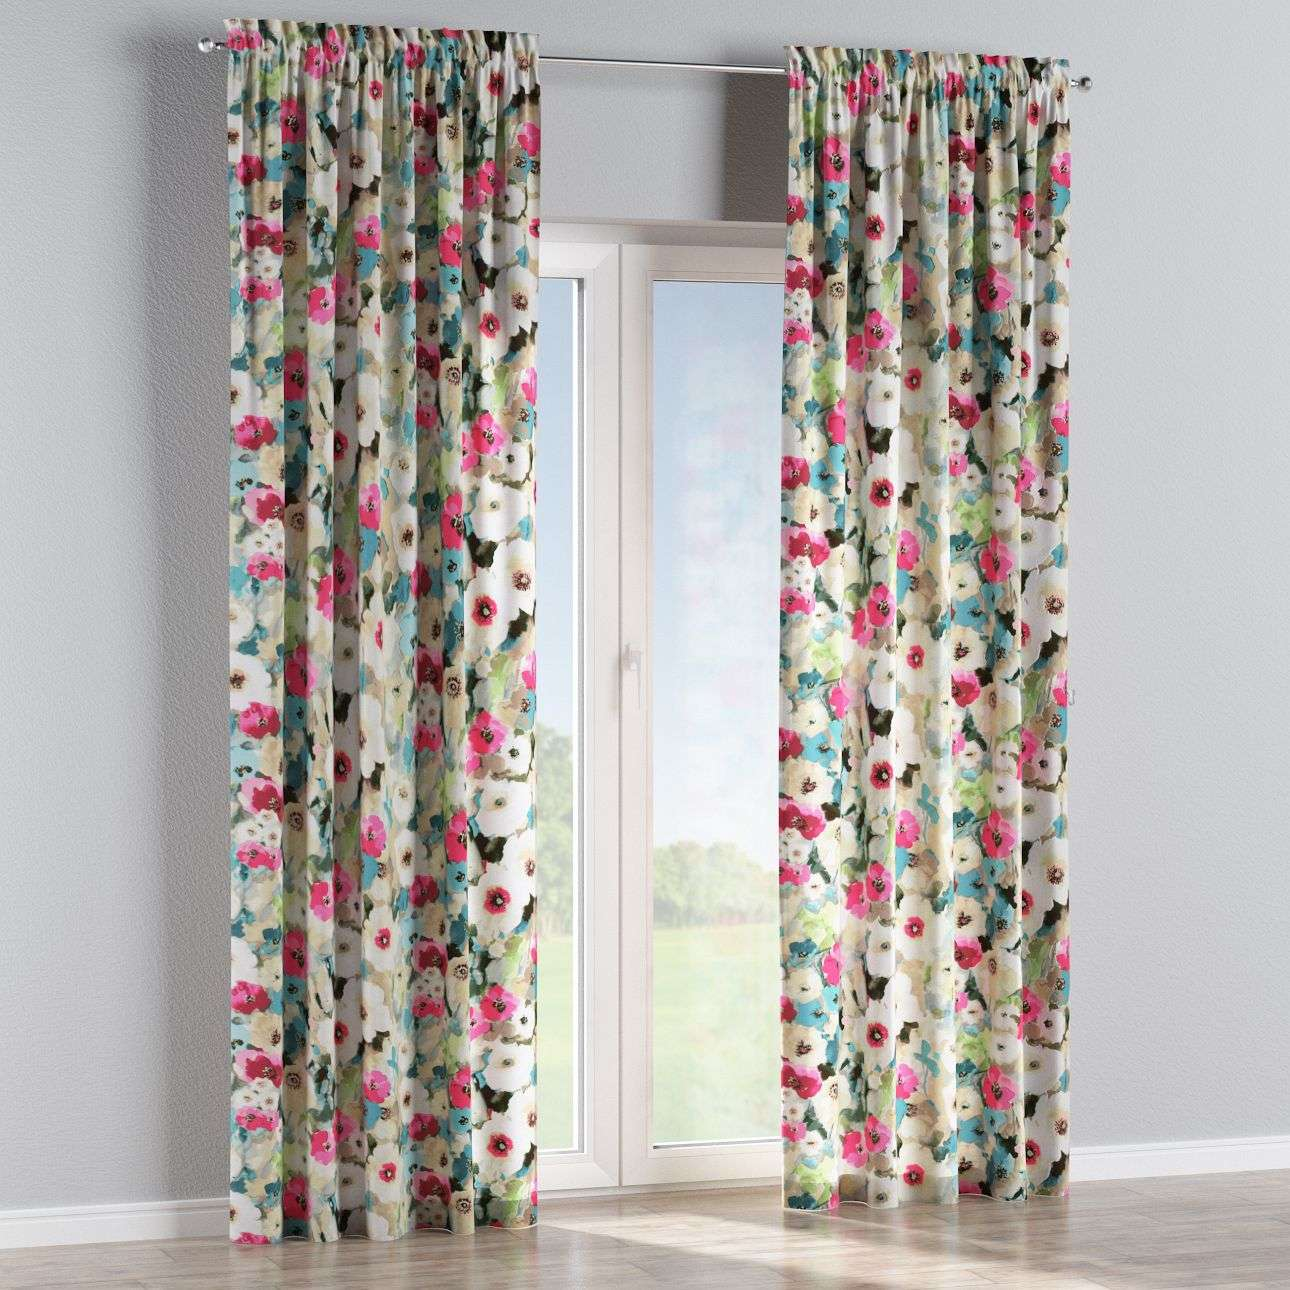 Slot and frill curtains 130 × 260 cm (51 × 102 inch) in collection Monet, fabric: 140-08